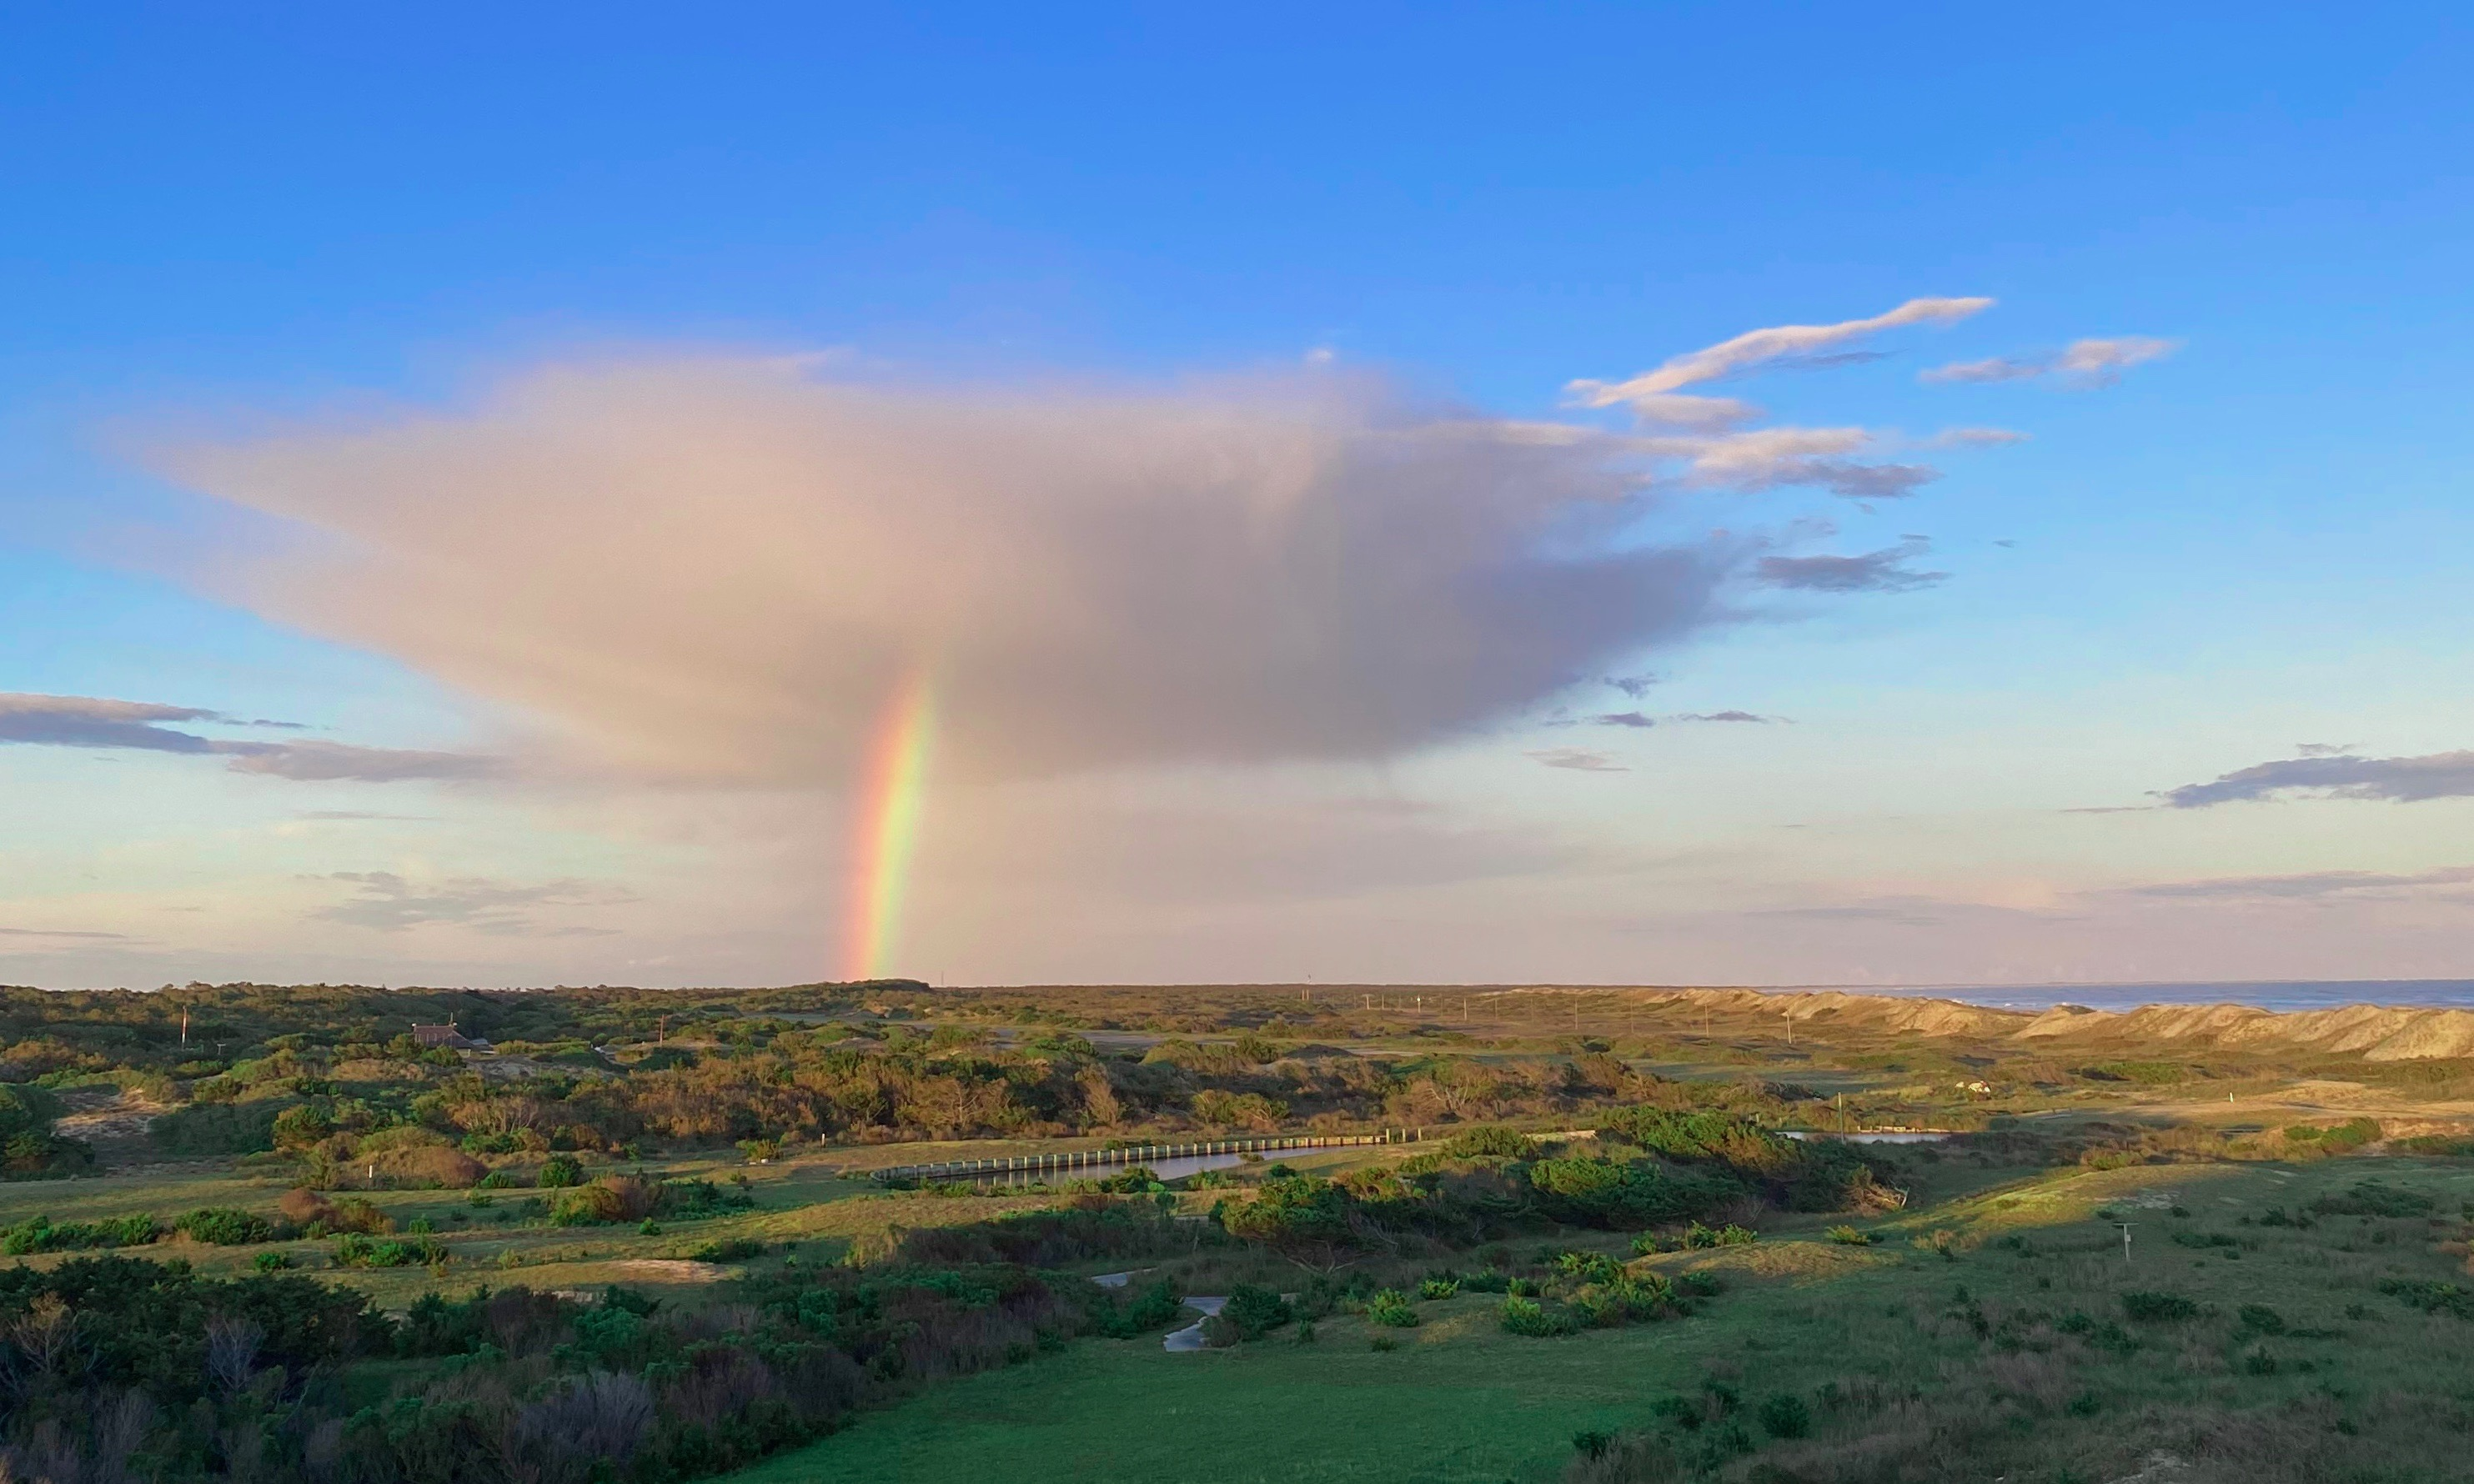 Rainbow over Cape Hatteras National Seashore